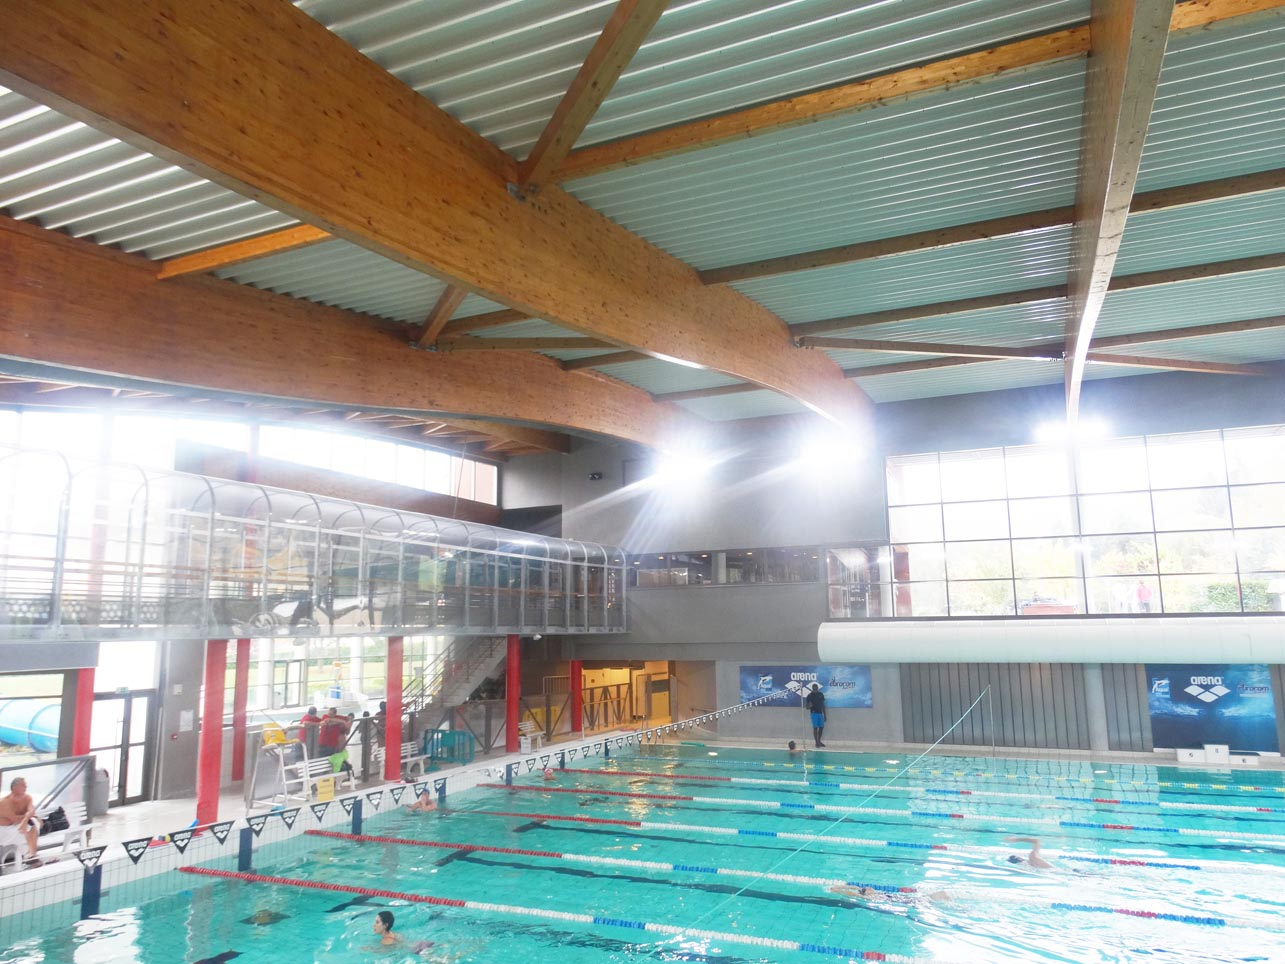 Chevreuse Swimming Pool - Nlx - Next Lighting Experience ... à Piscine Chevreuse